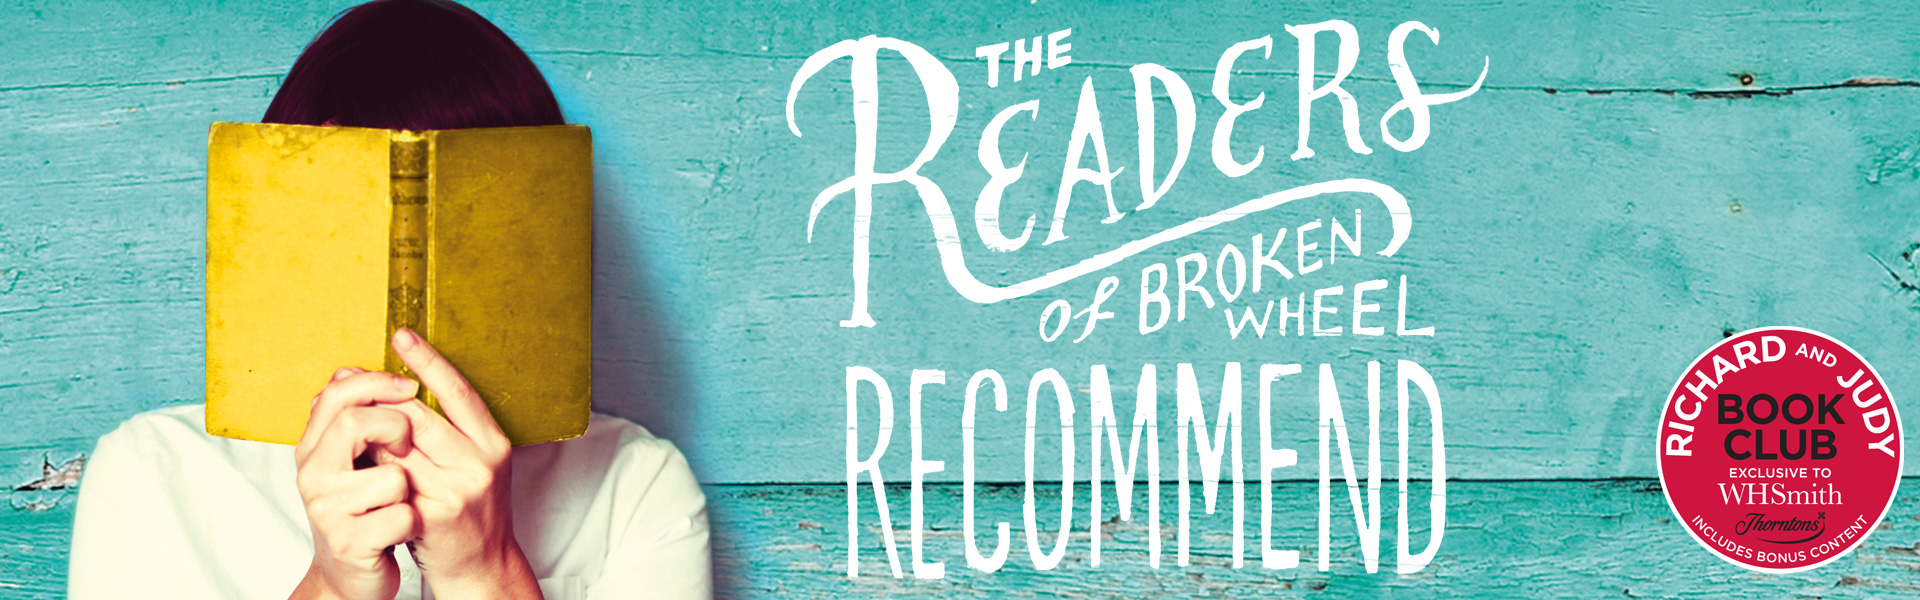 Read an Extract from The Readers of Broken Wheel Recommend by Katarina Bivald